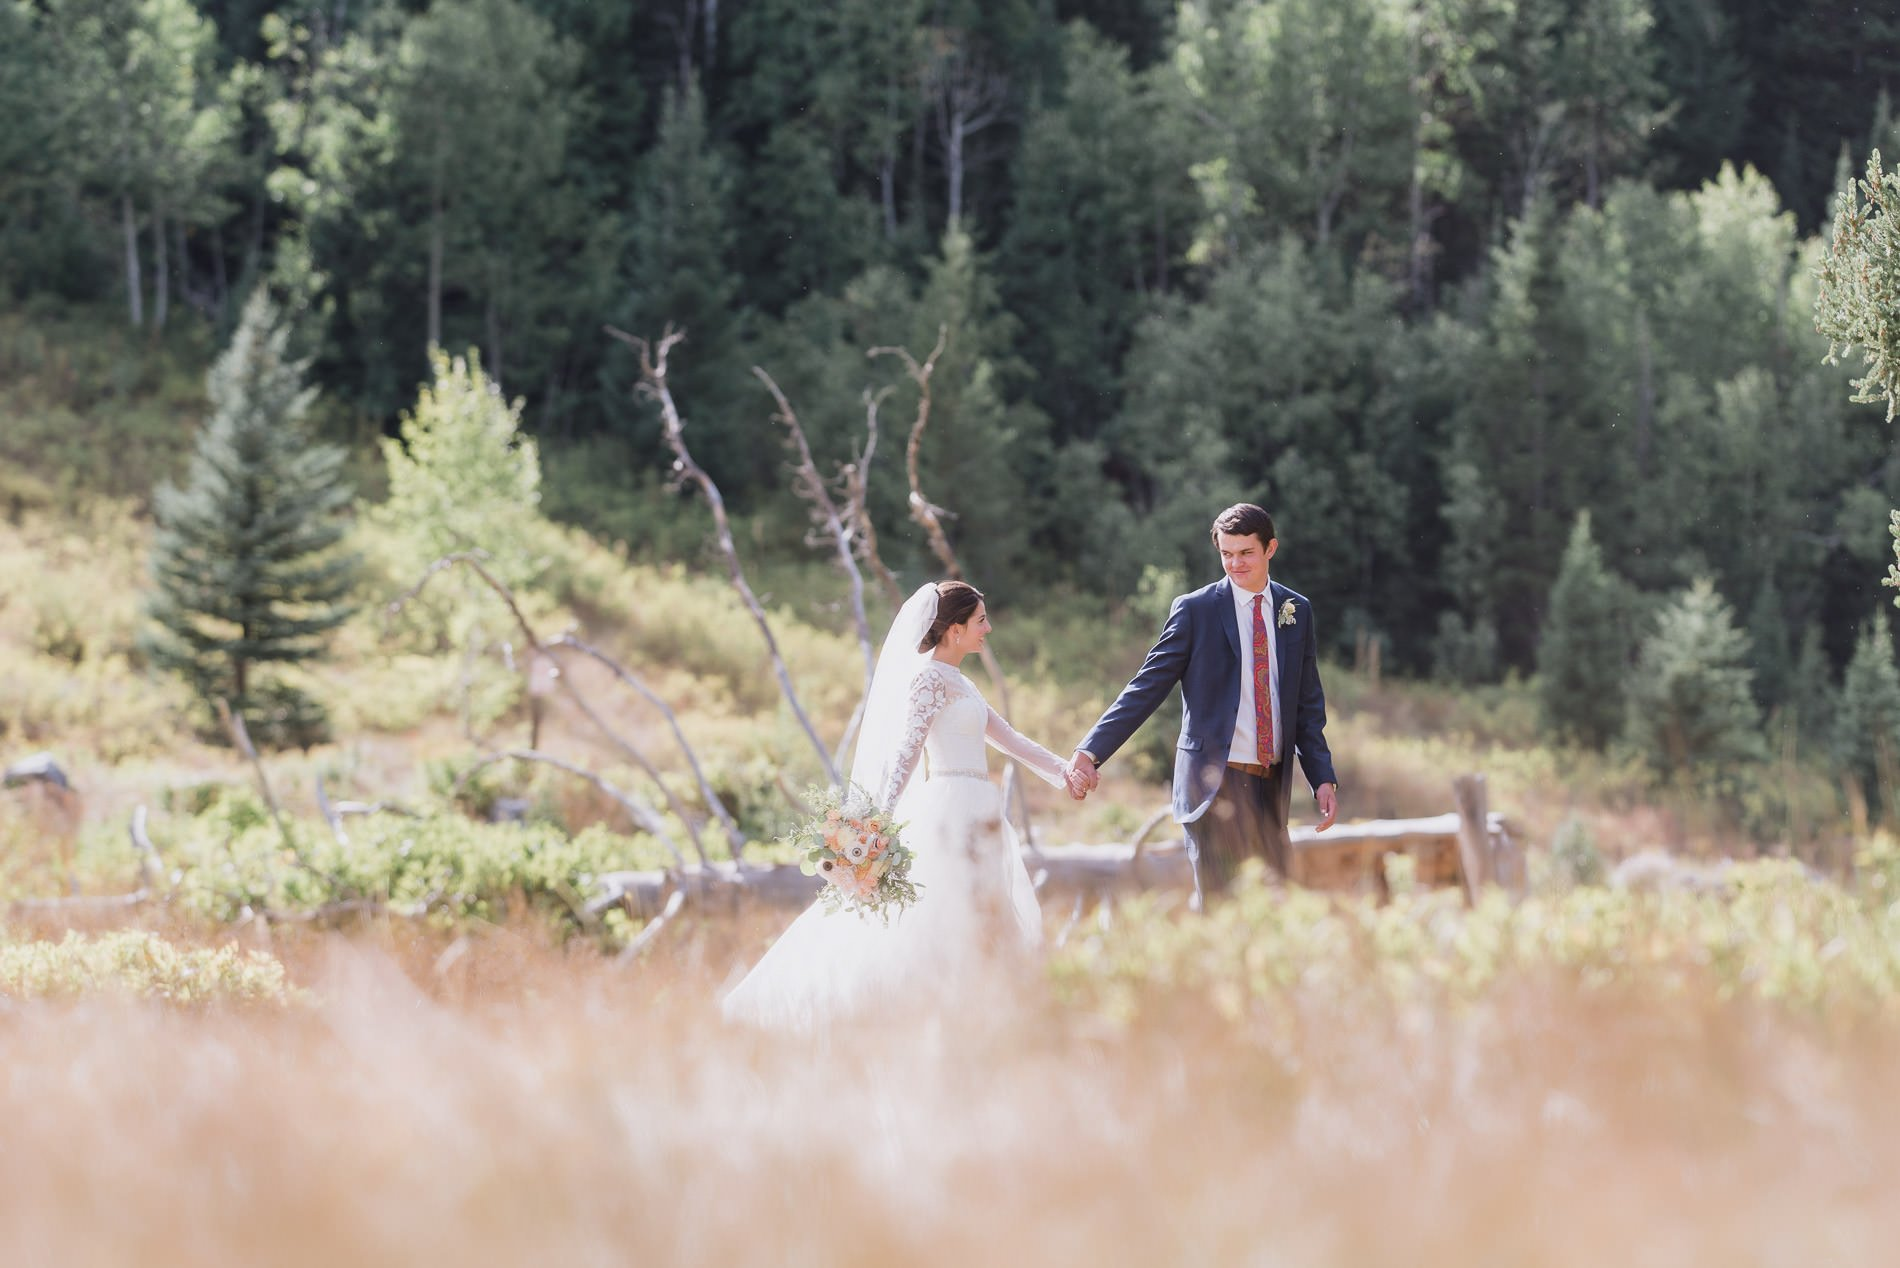 bride and groom walking together in bridal photography at Jordan pines